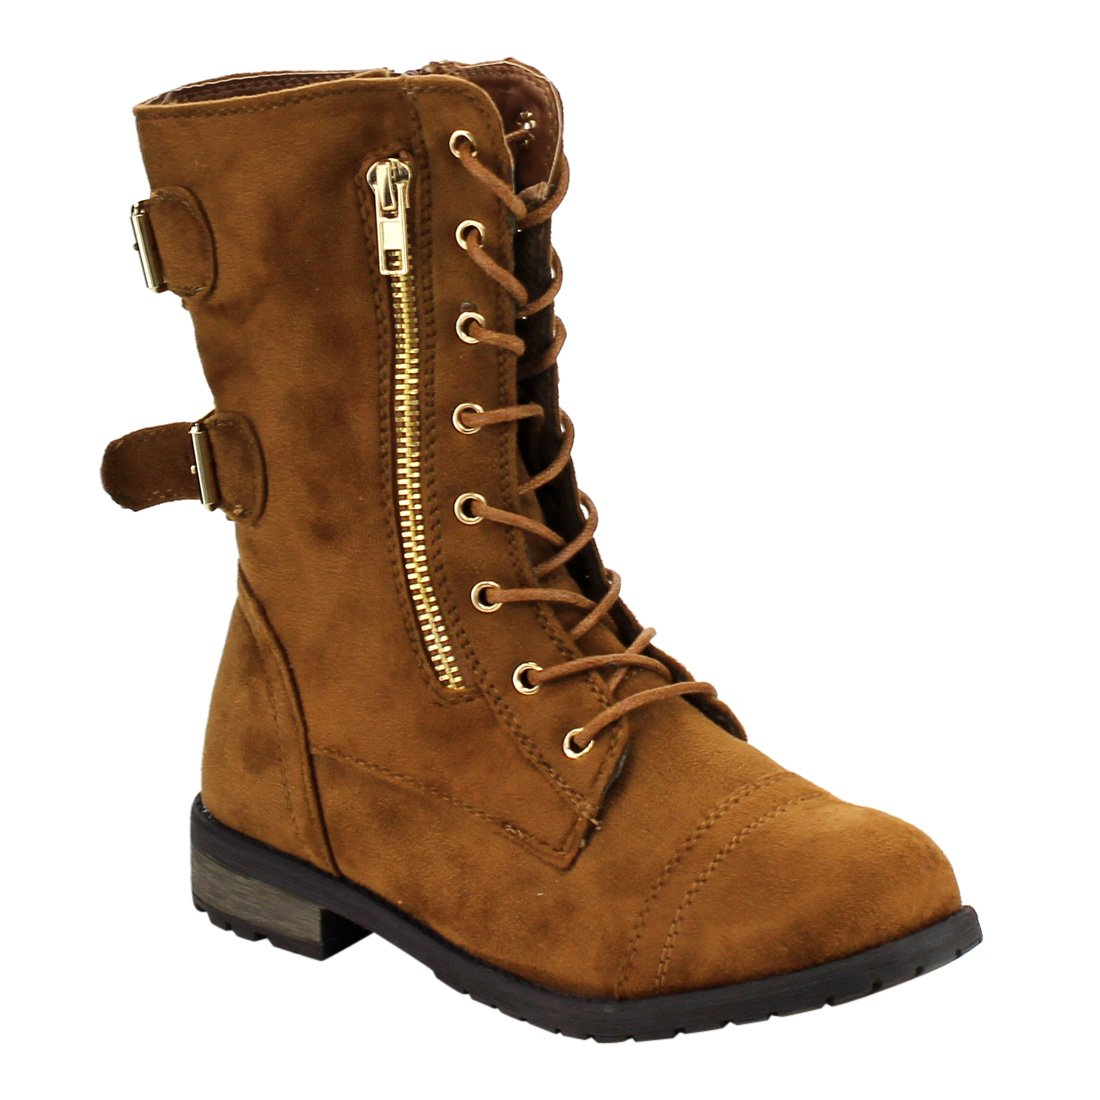 Buy Forever Link NU BUCK LACE UP ALMOND TOE WORKMAN HIGH HEEL ... e2f57d9fa